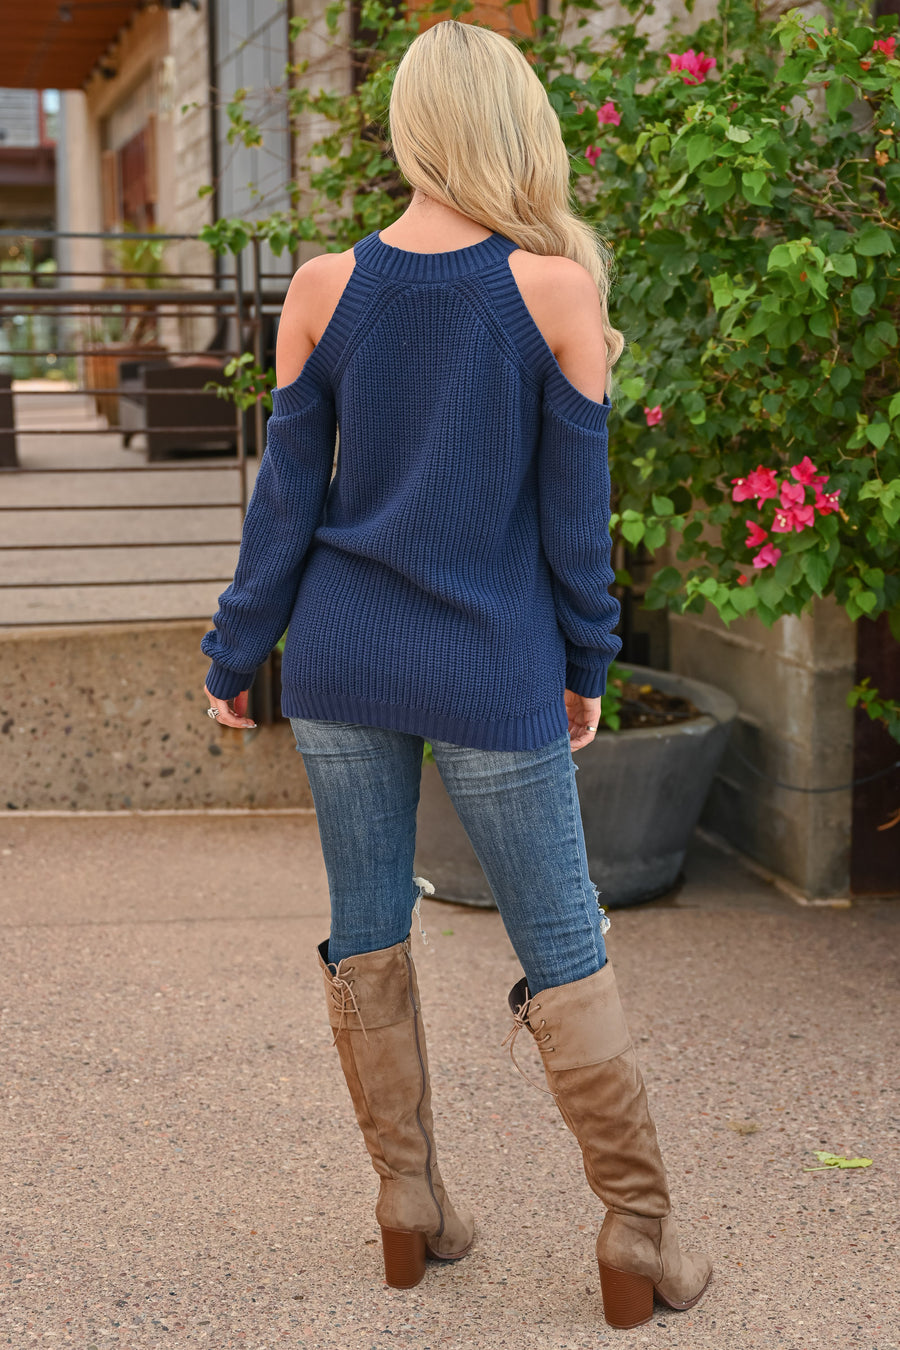 Fall Nights Cold Shoulder Knit Sweater - Navy long sleeve round neckline ribbed knit sweater closet candy front